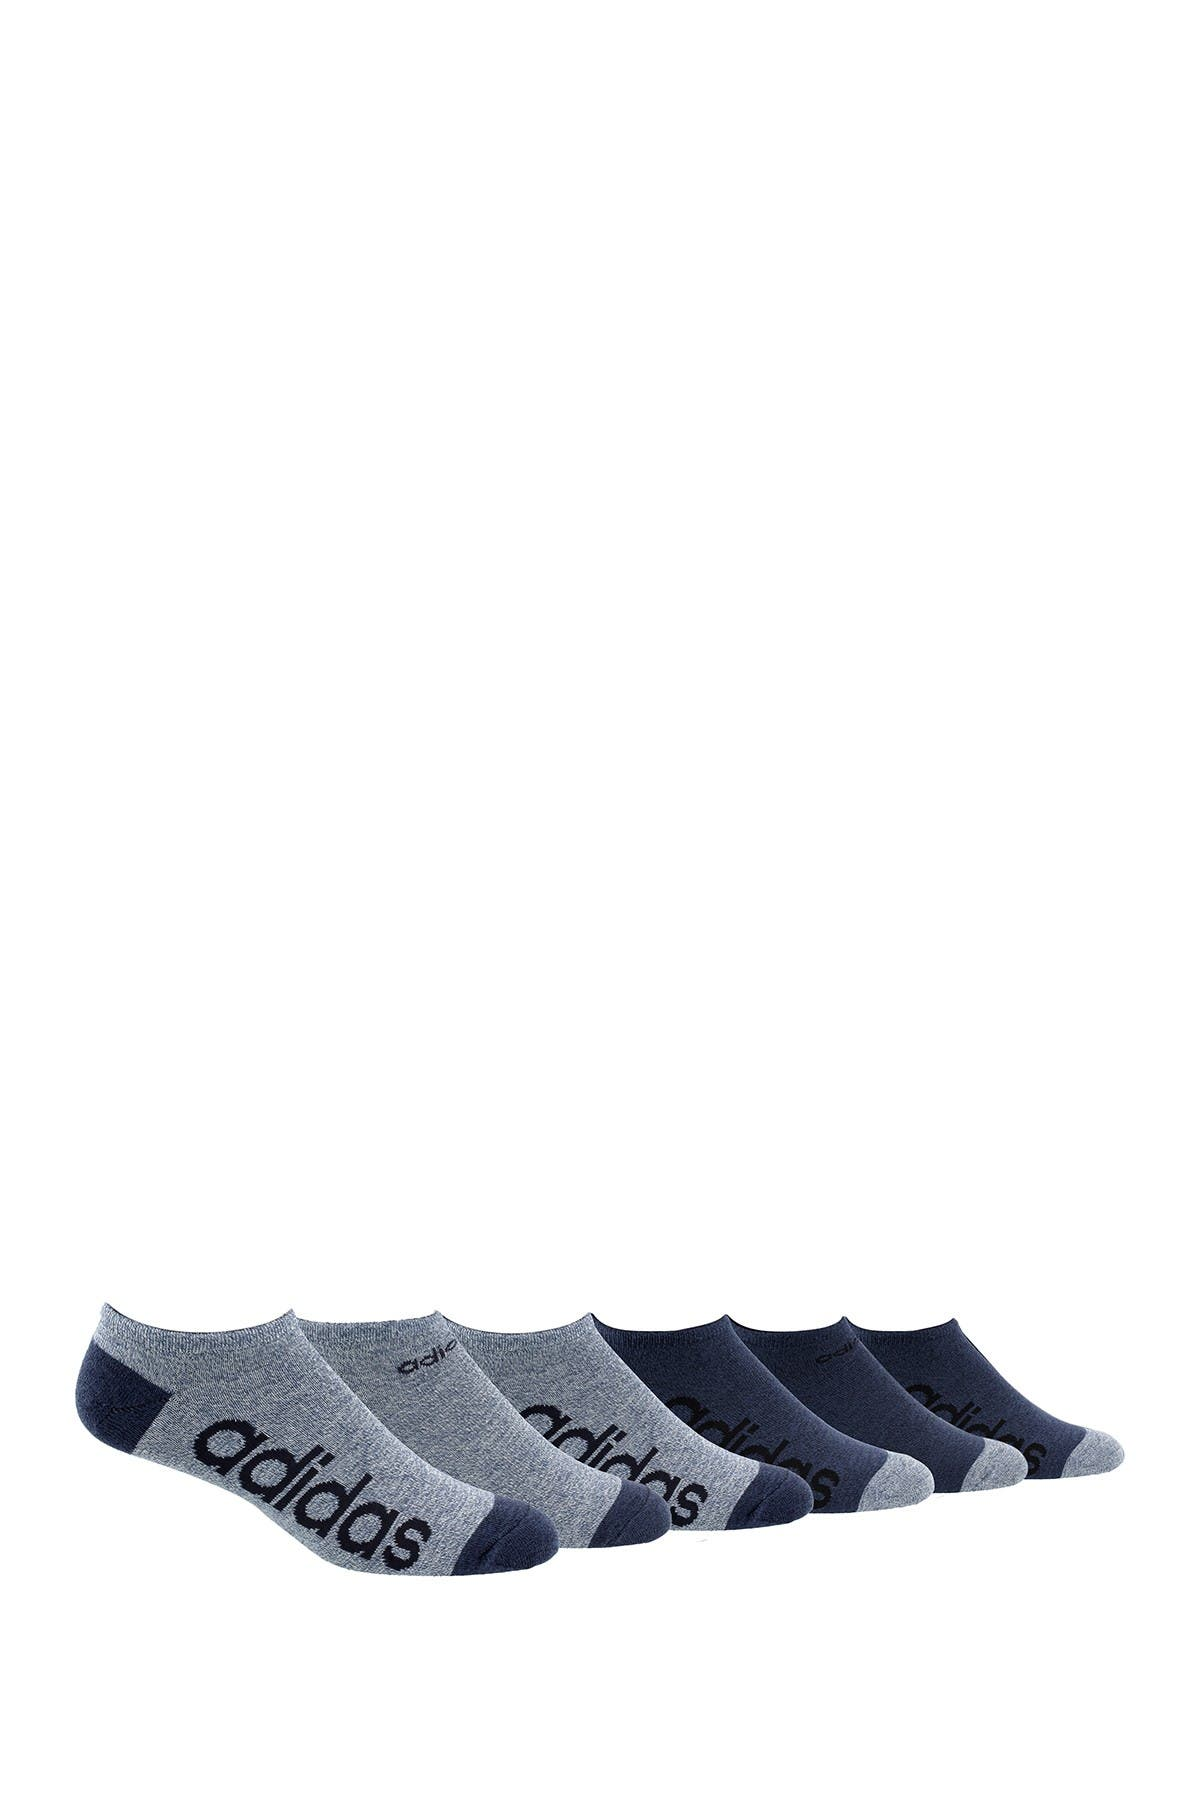 Image of adidas No Show Linear Logo Socks - Pack of 6